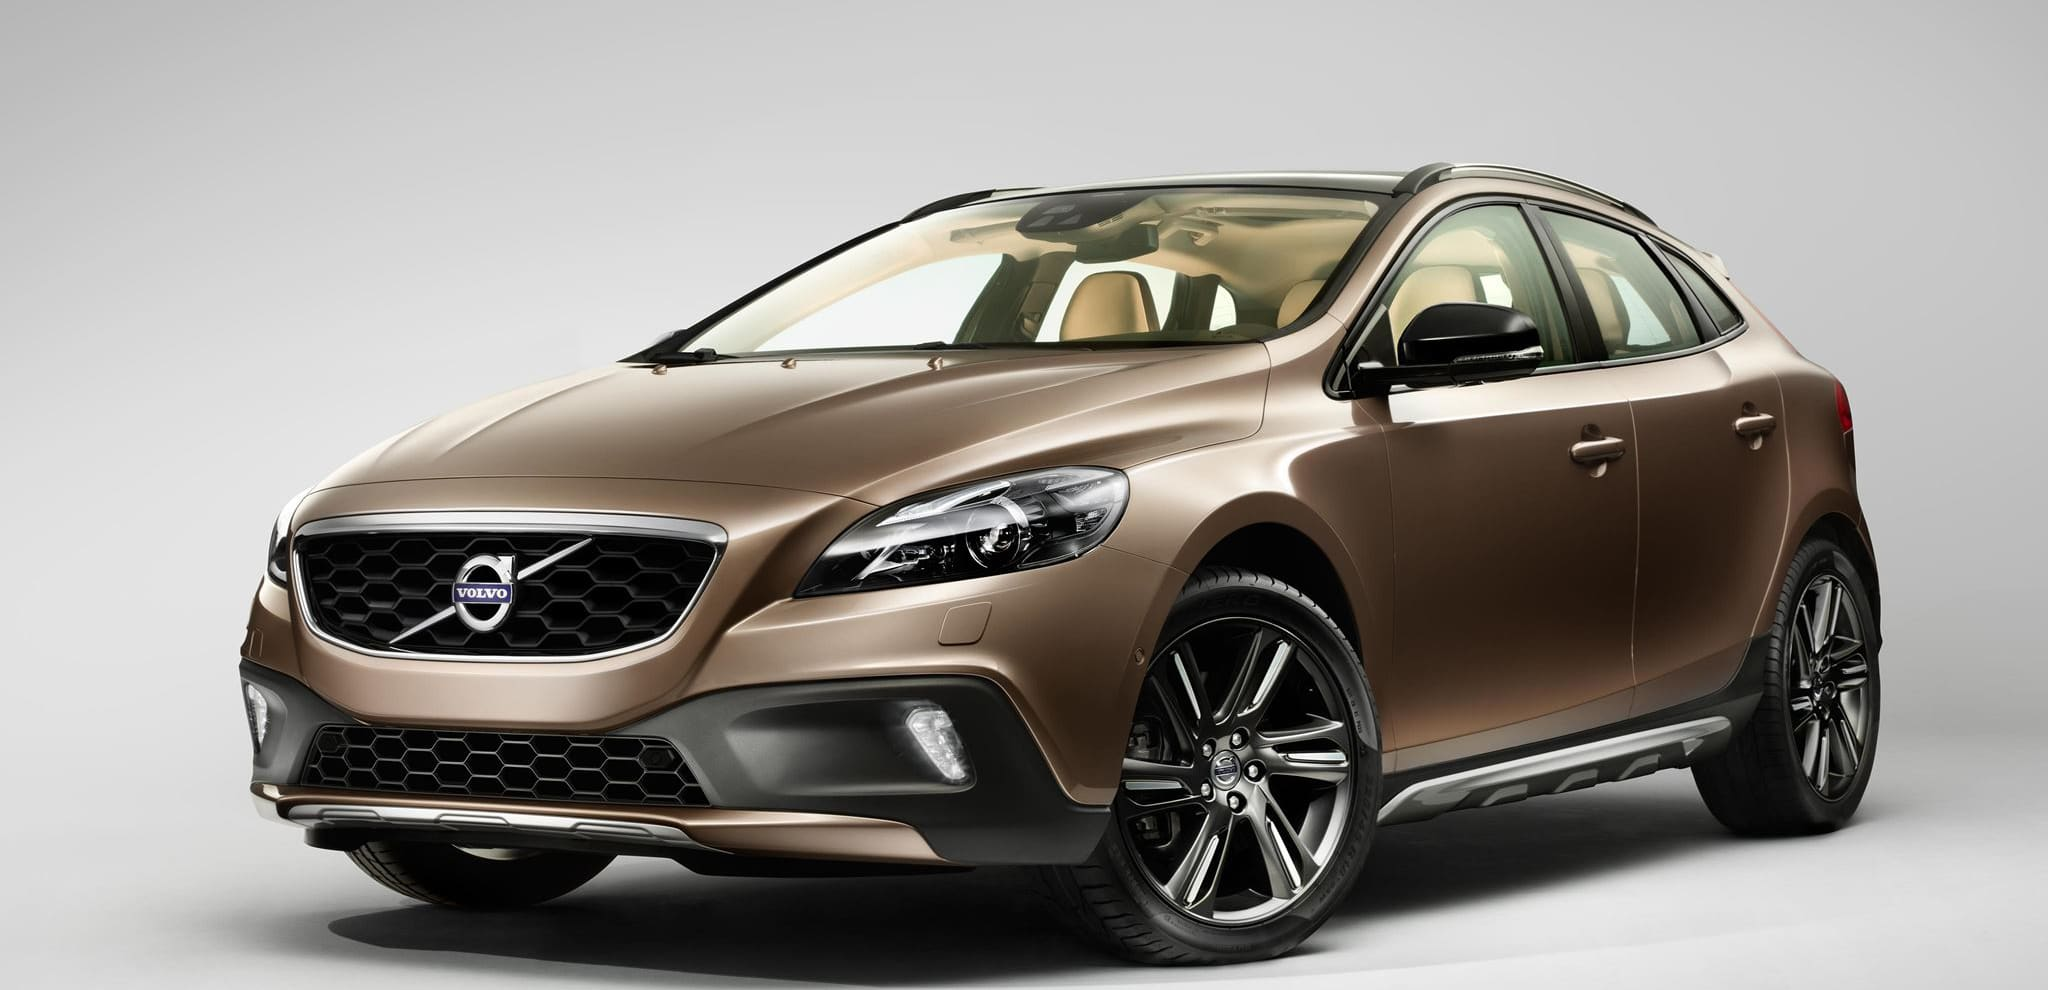 volvo v40 cross country range volvo. Black Bedroom Furniture Sets. Home Design Ideas